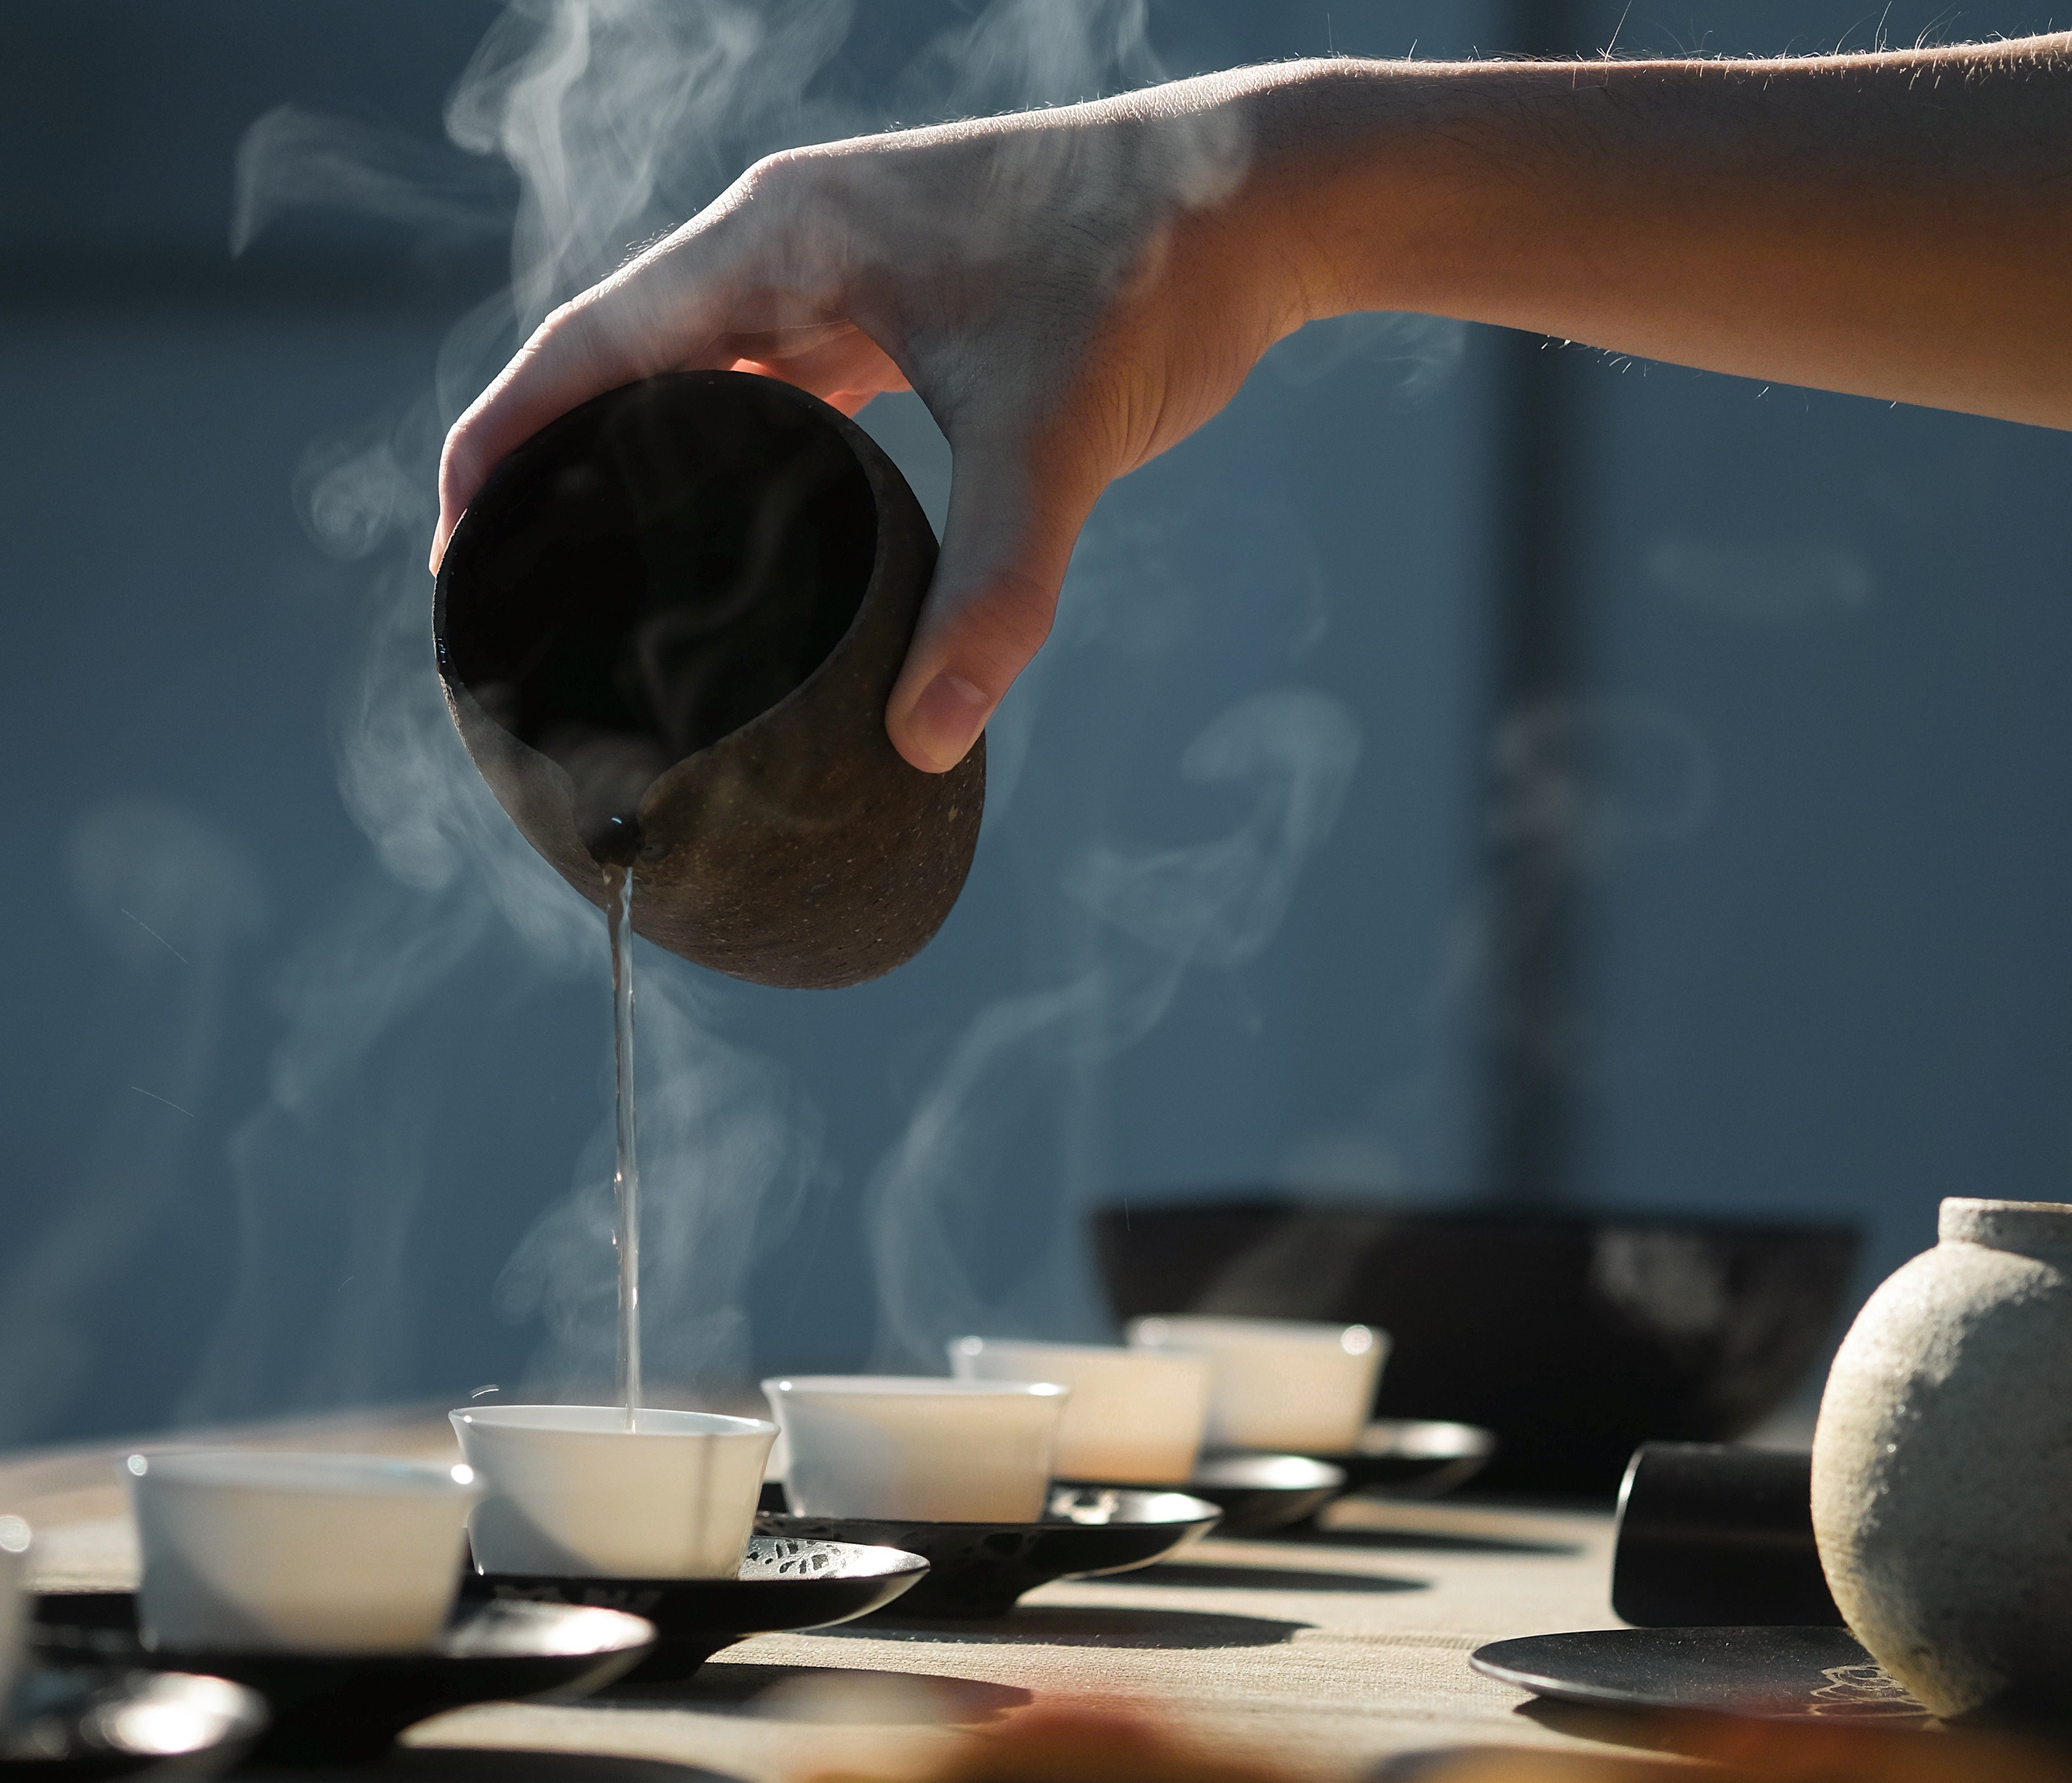 Tea ceremony for mindfulness